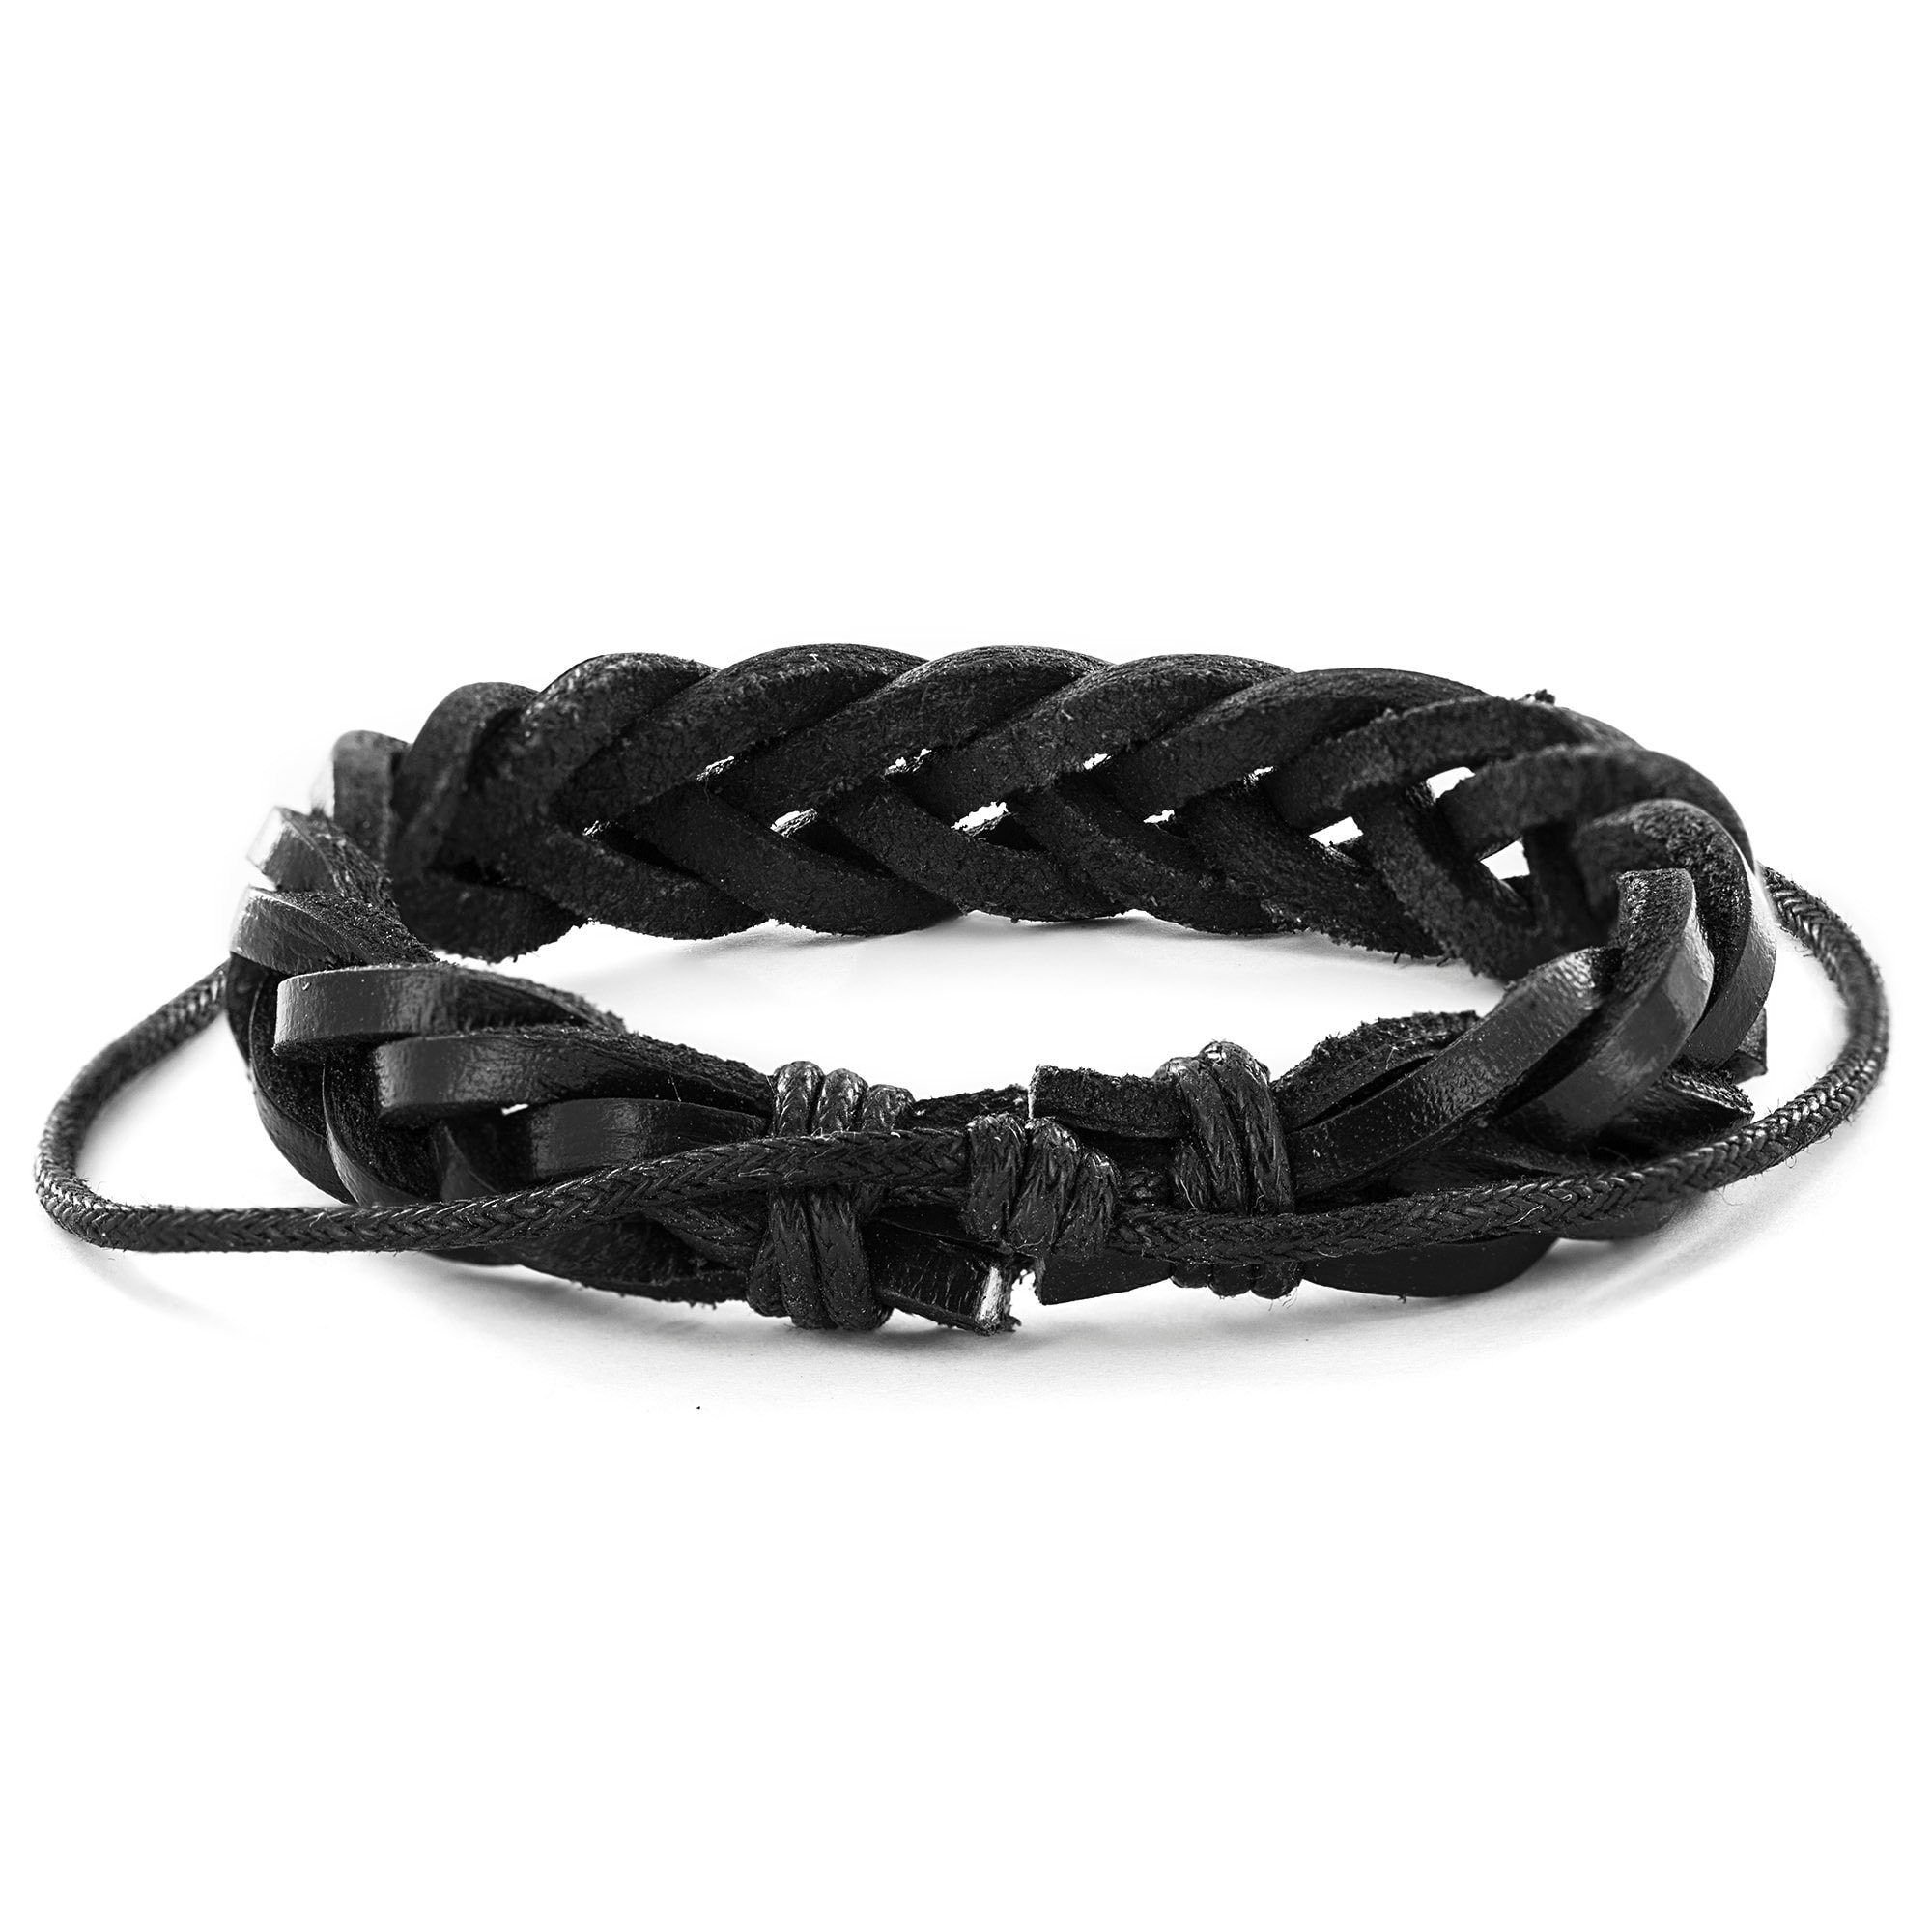 Black Leather Braided Bracelet Free Shipping On Orders Over 45 6359677